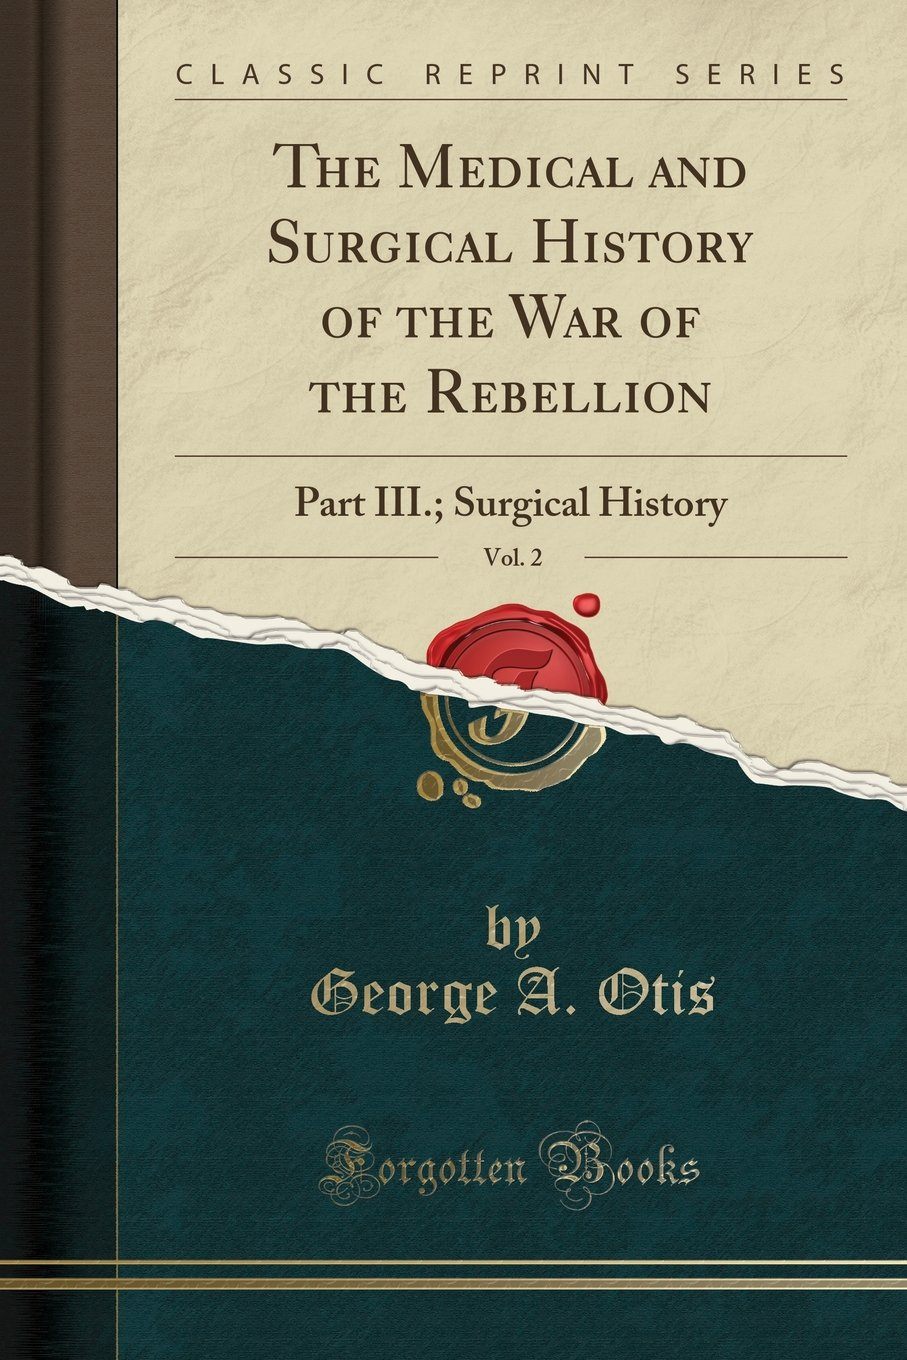 The Medical and Surgical History of the War of the Rebellion, Vol. 2: Part III; Surgical History (Classic Reprint) pdf